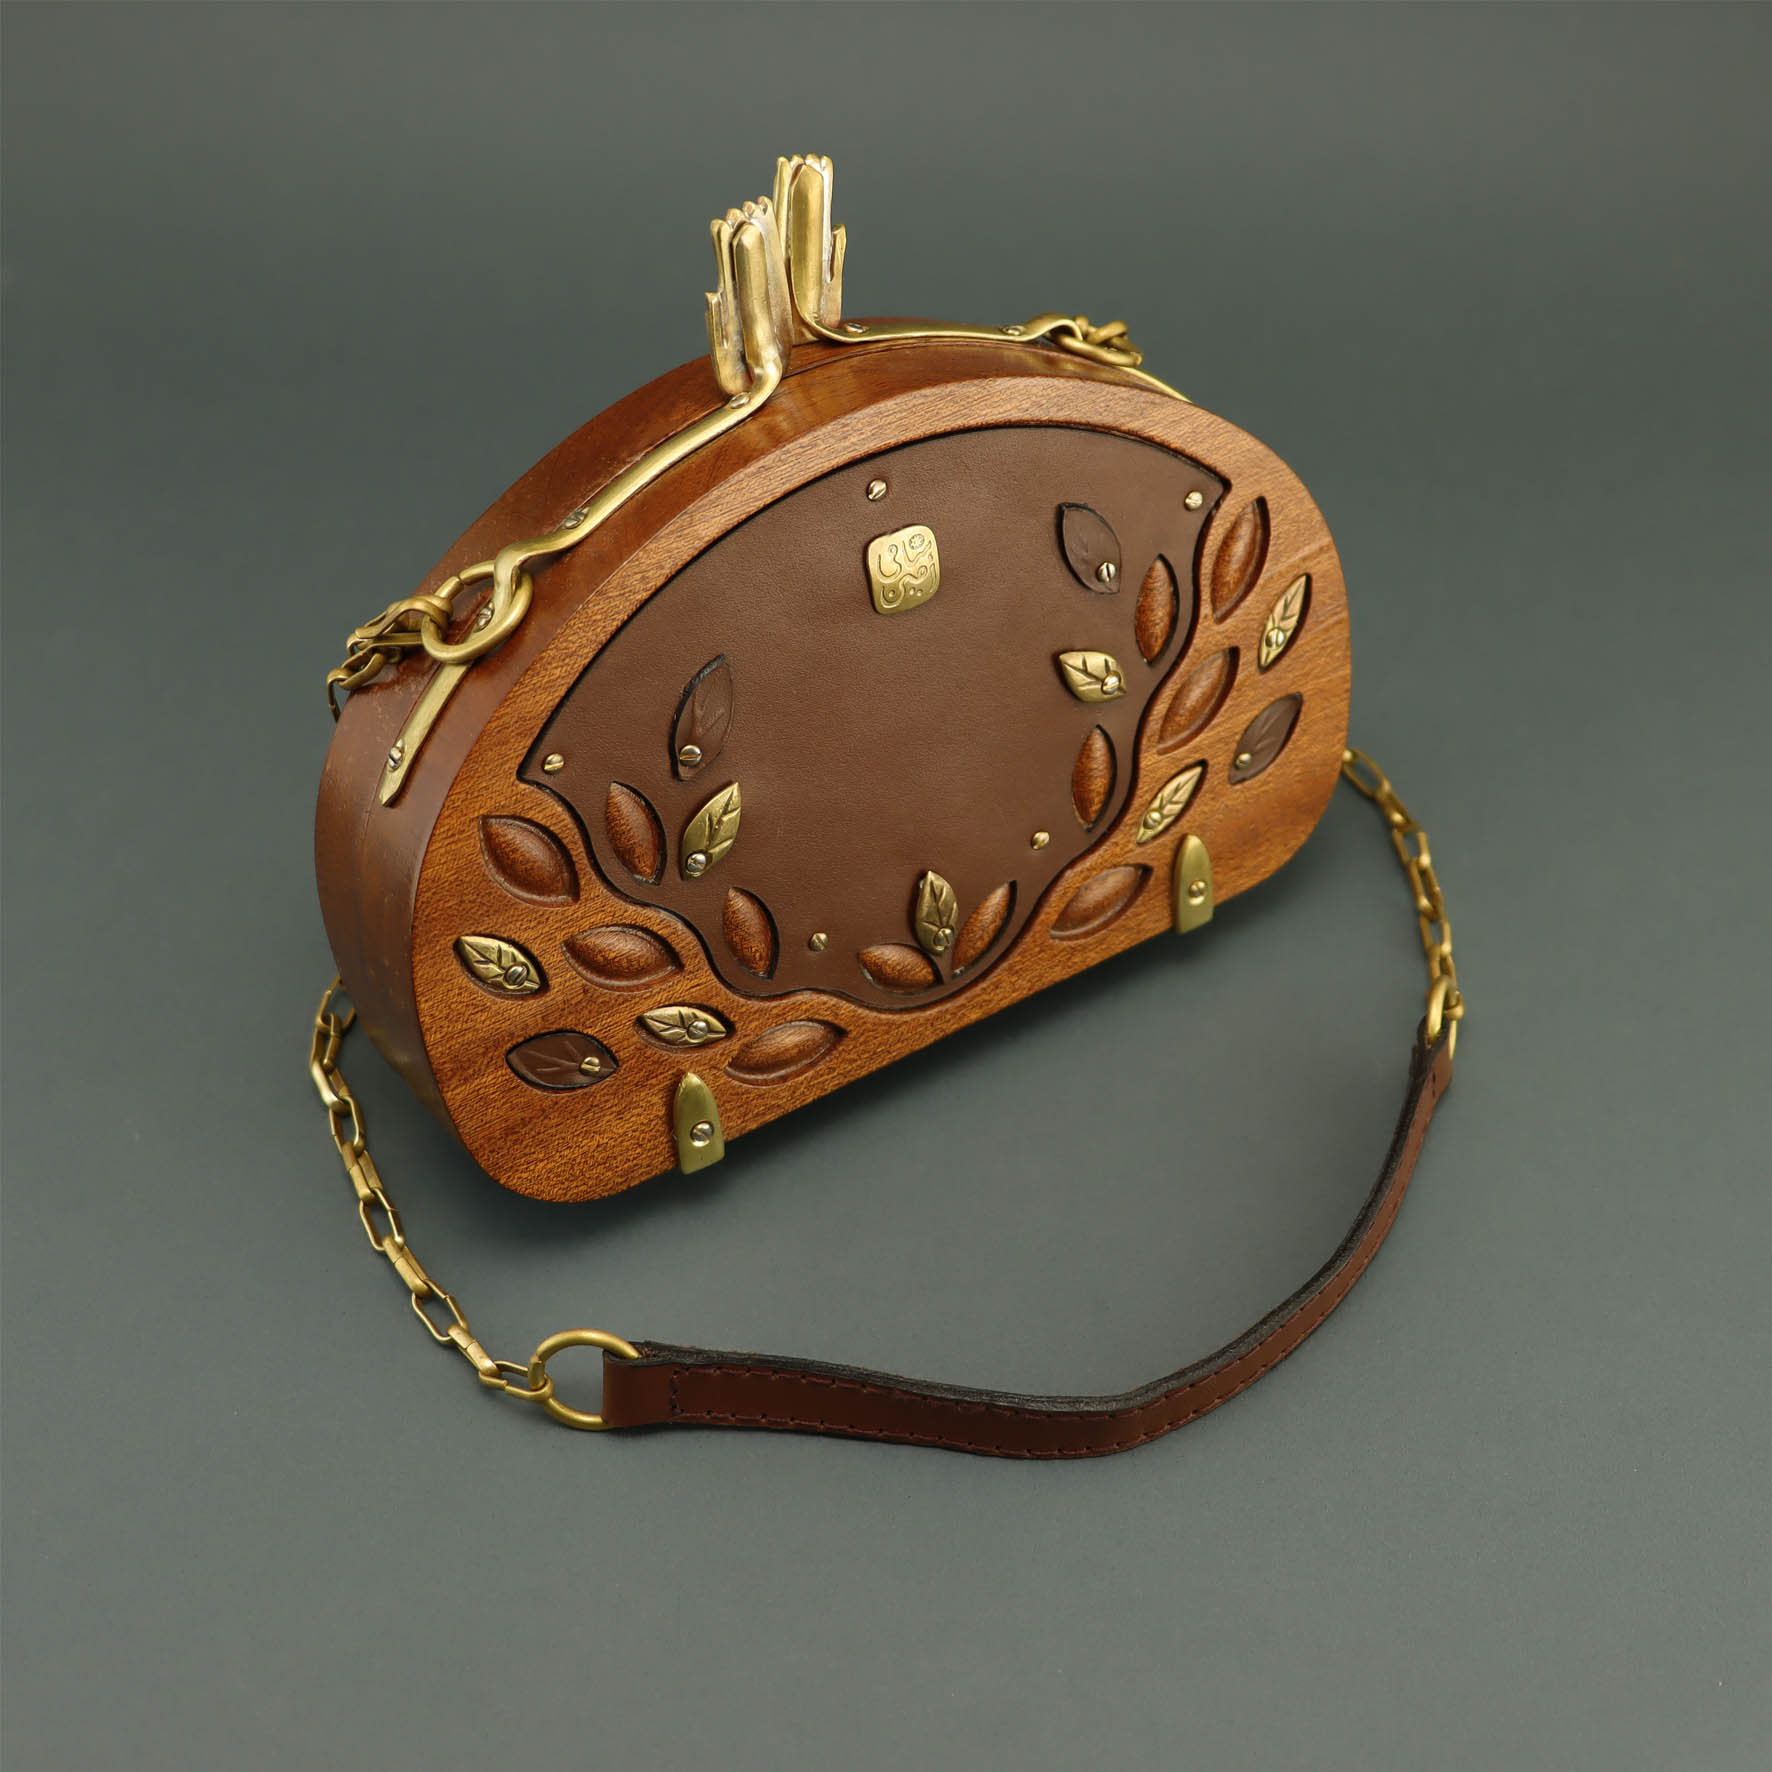 Tree of life wooden bag